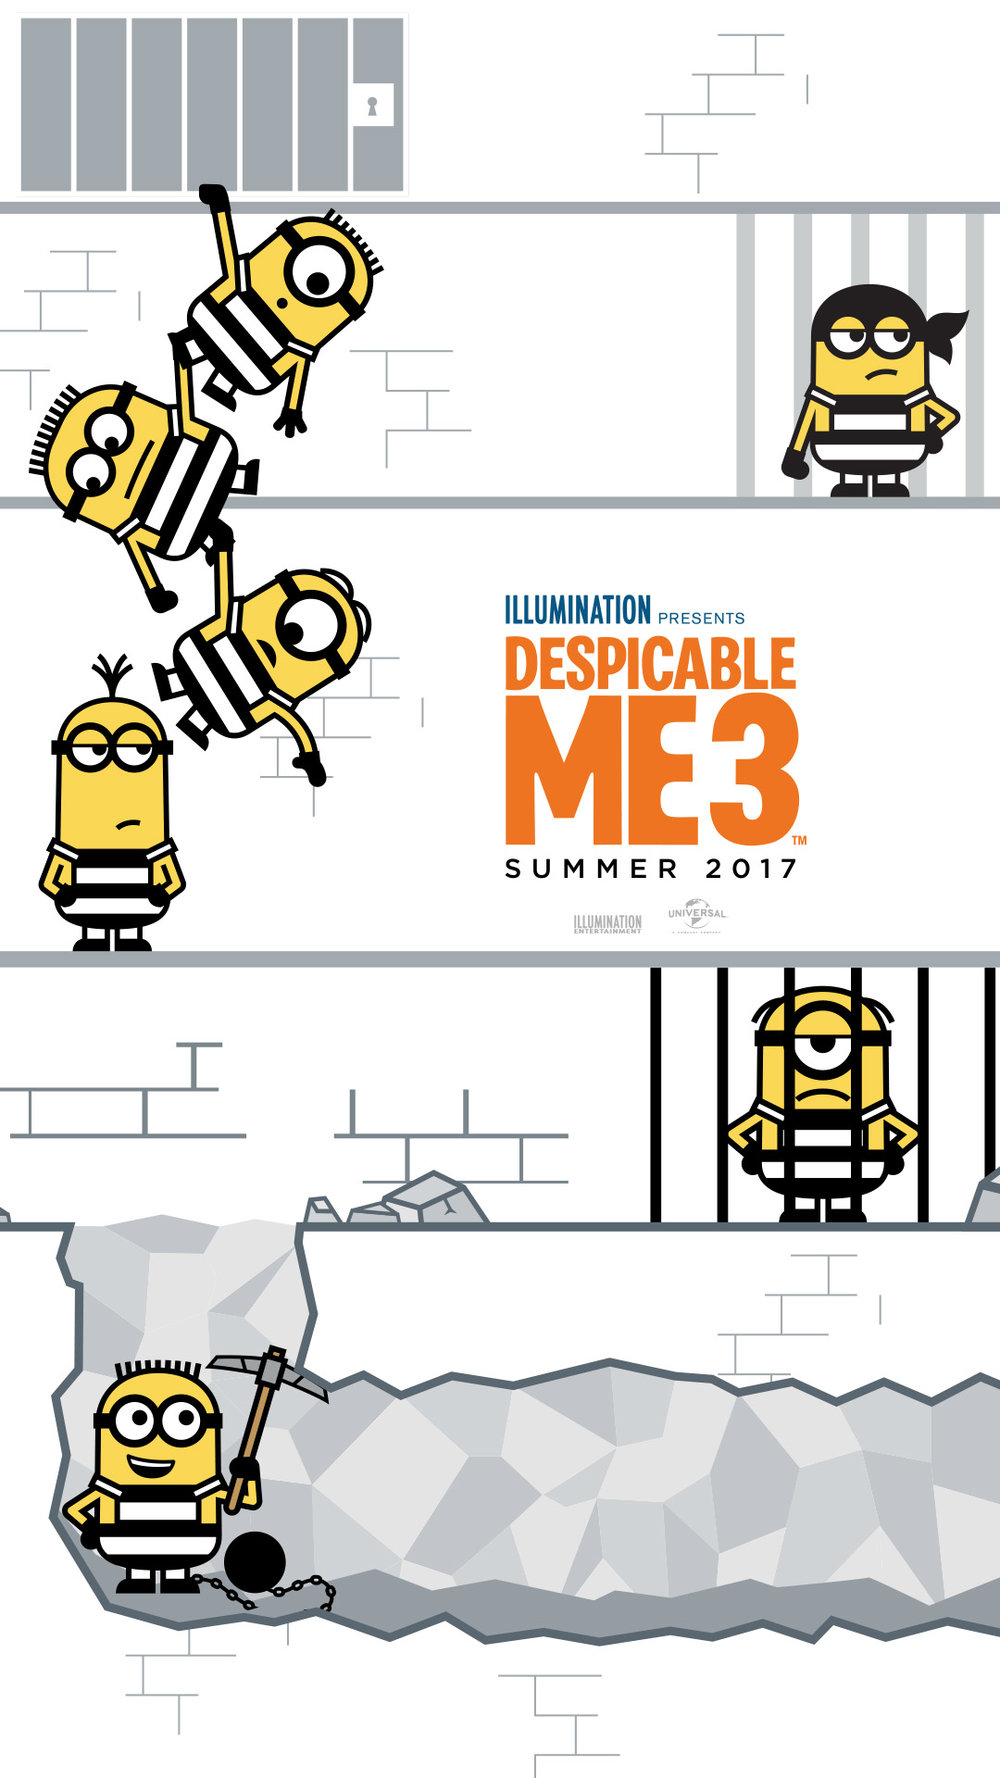 Zedge_Wallpaper_DespicableMe3_12_1080x1920.jpg